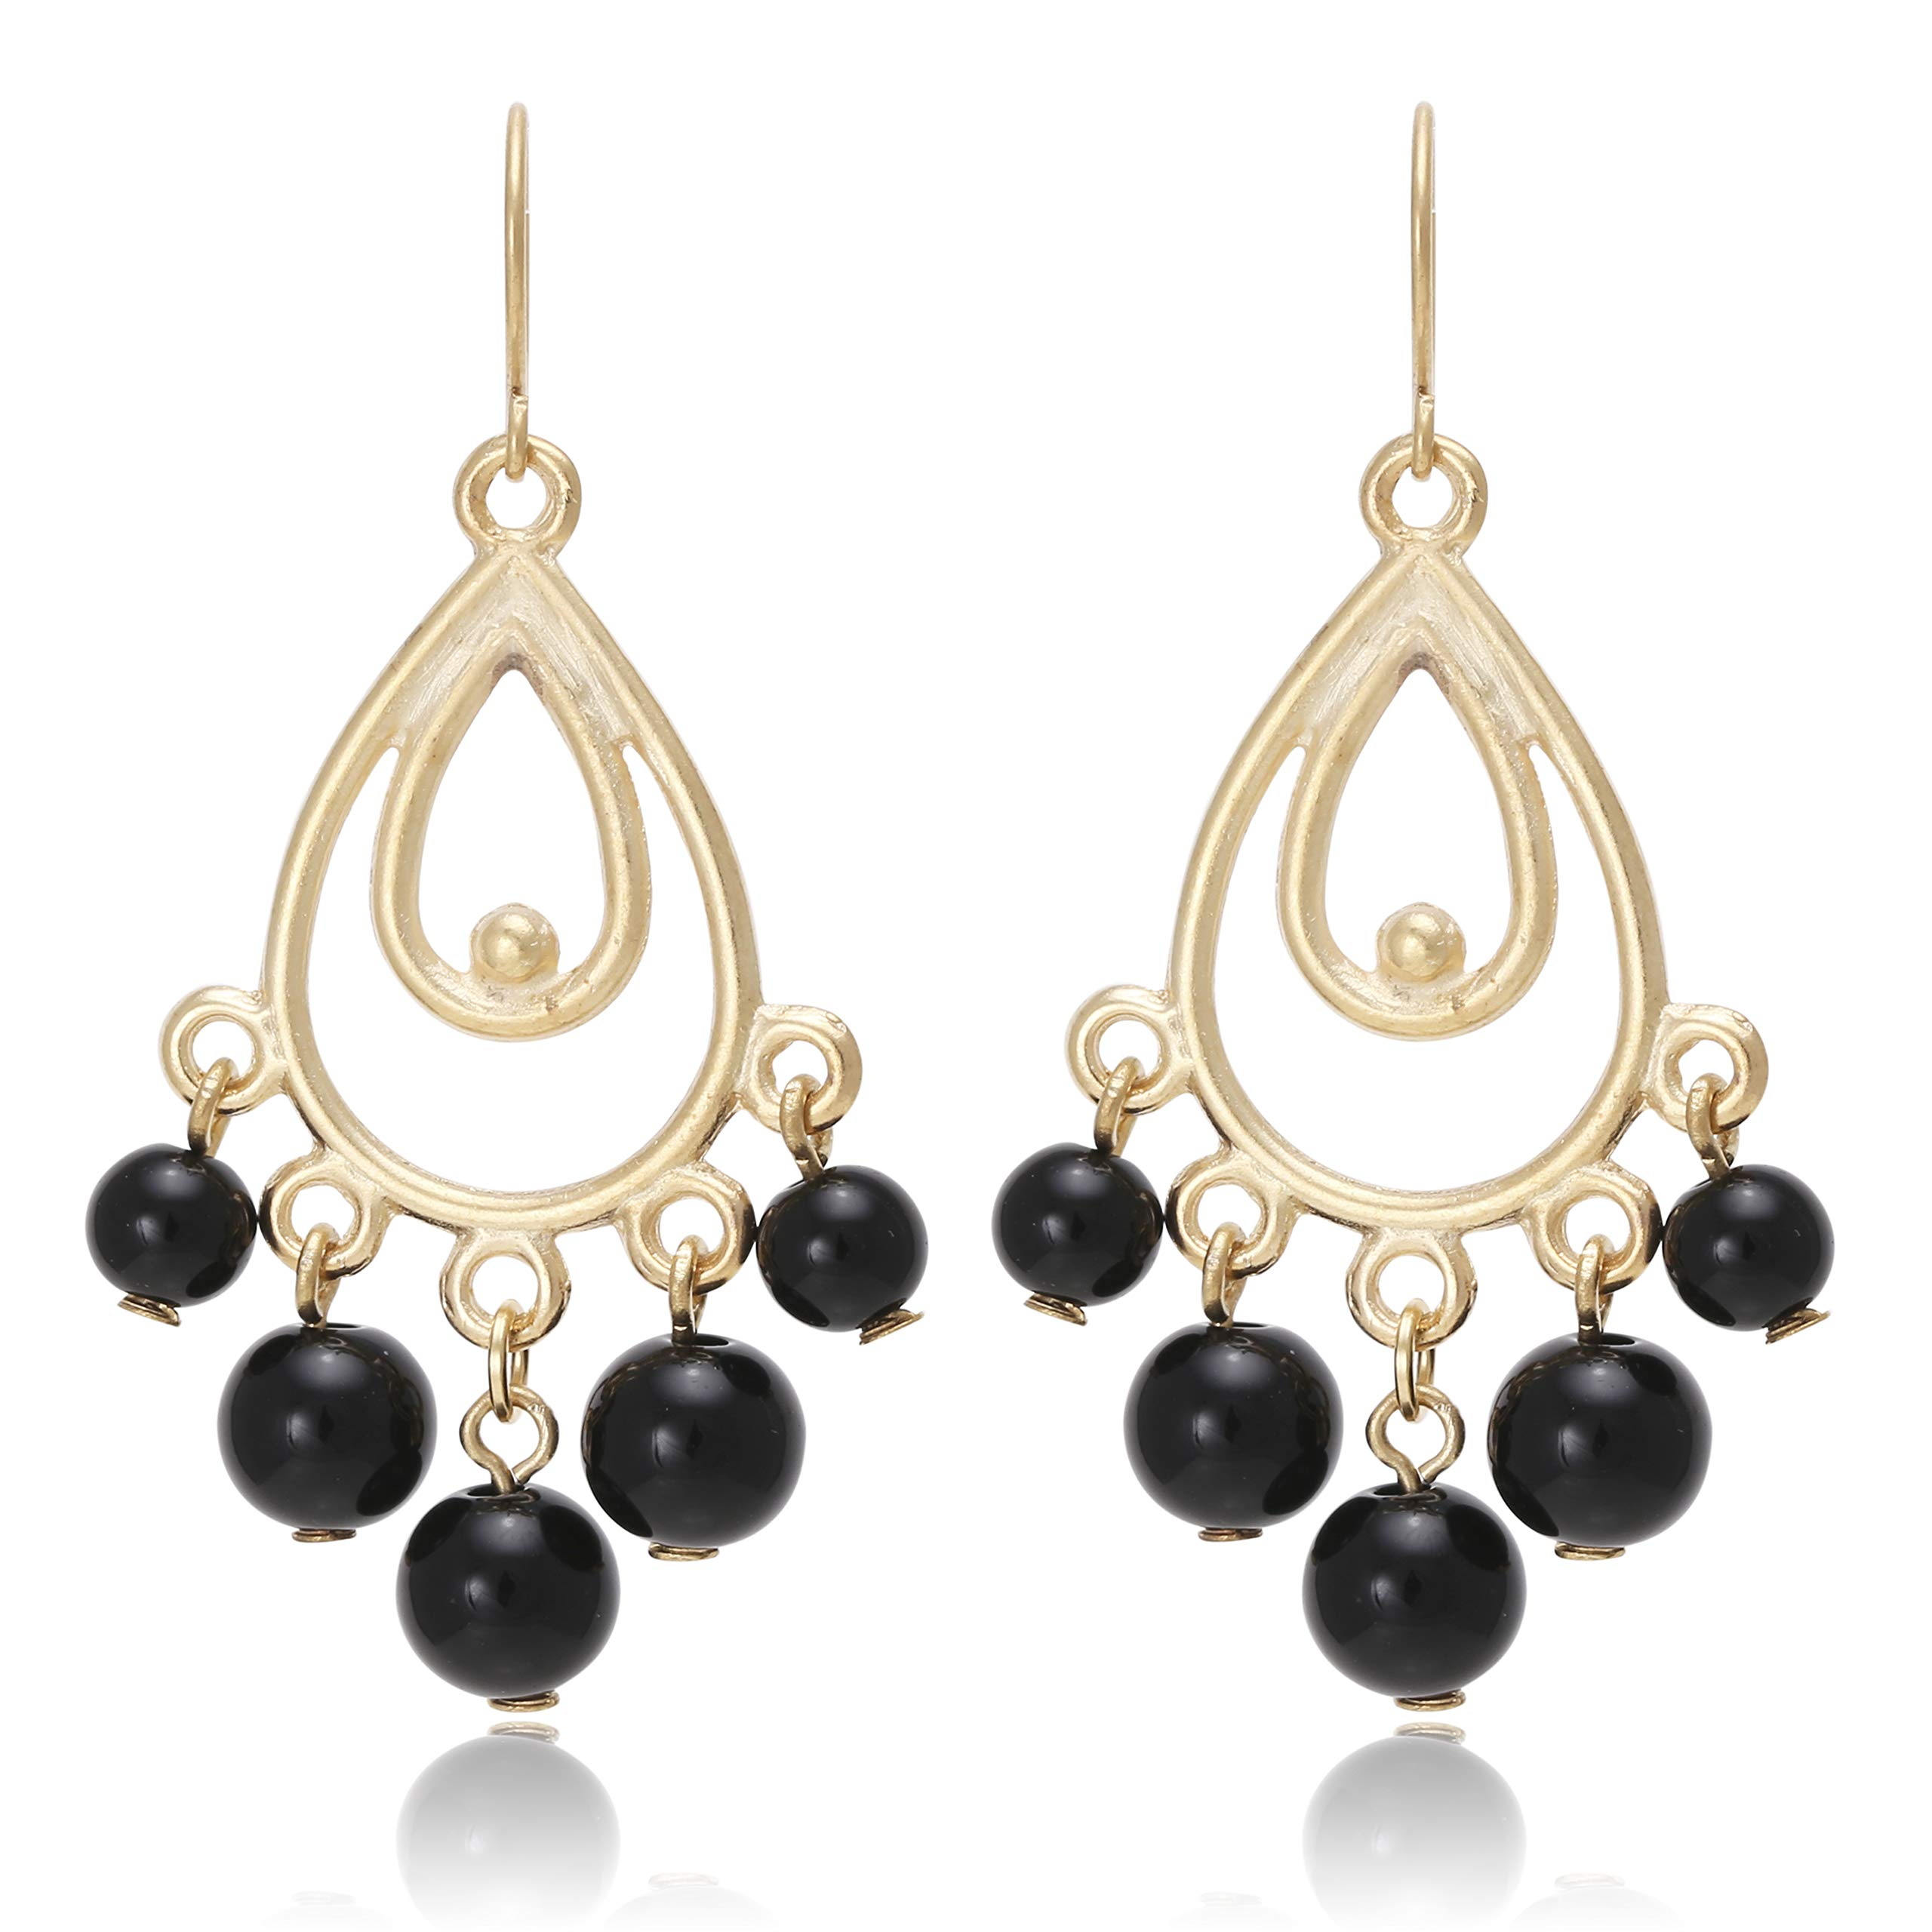 Bohemian Multi Beads Tassel with Chandelier Tear Drop Earrings for Women